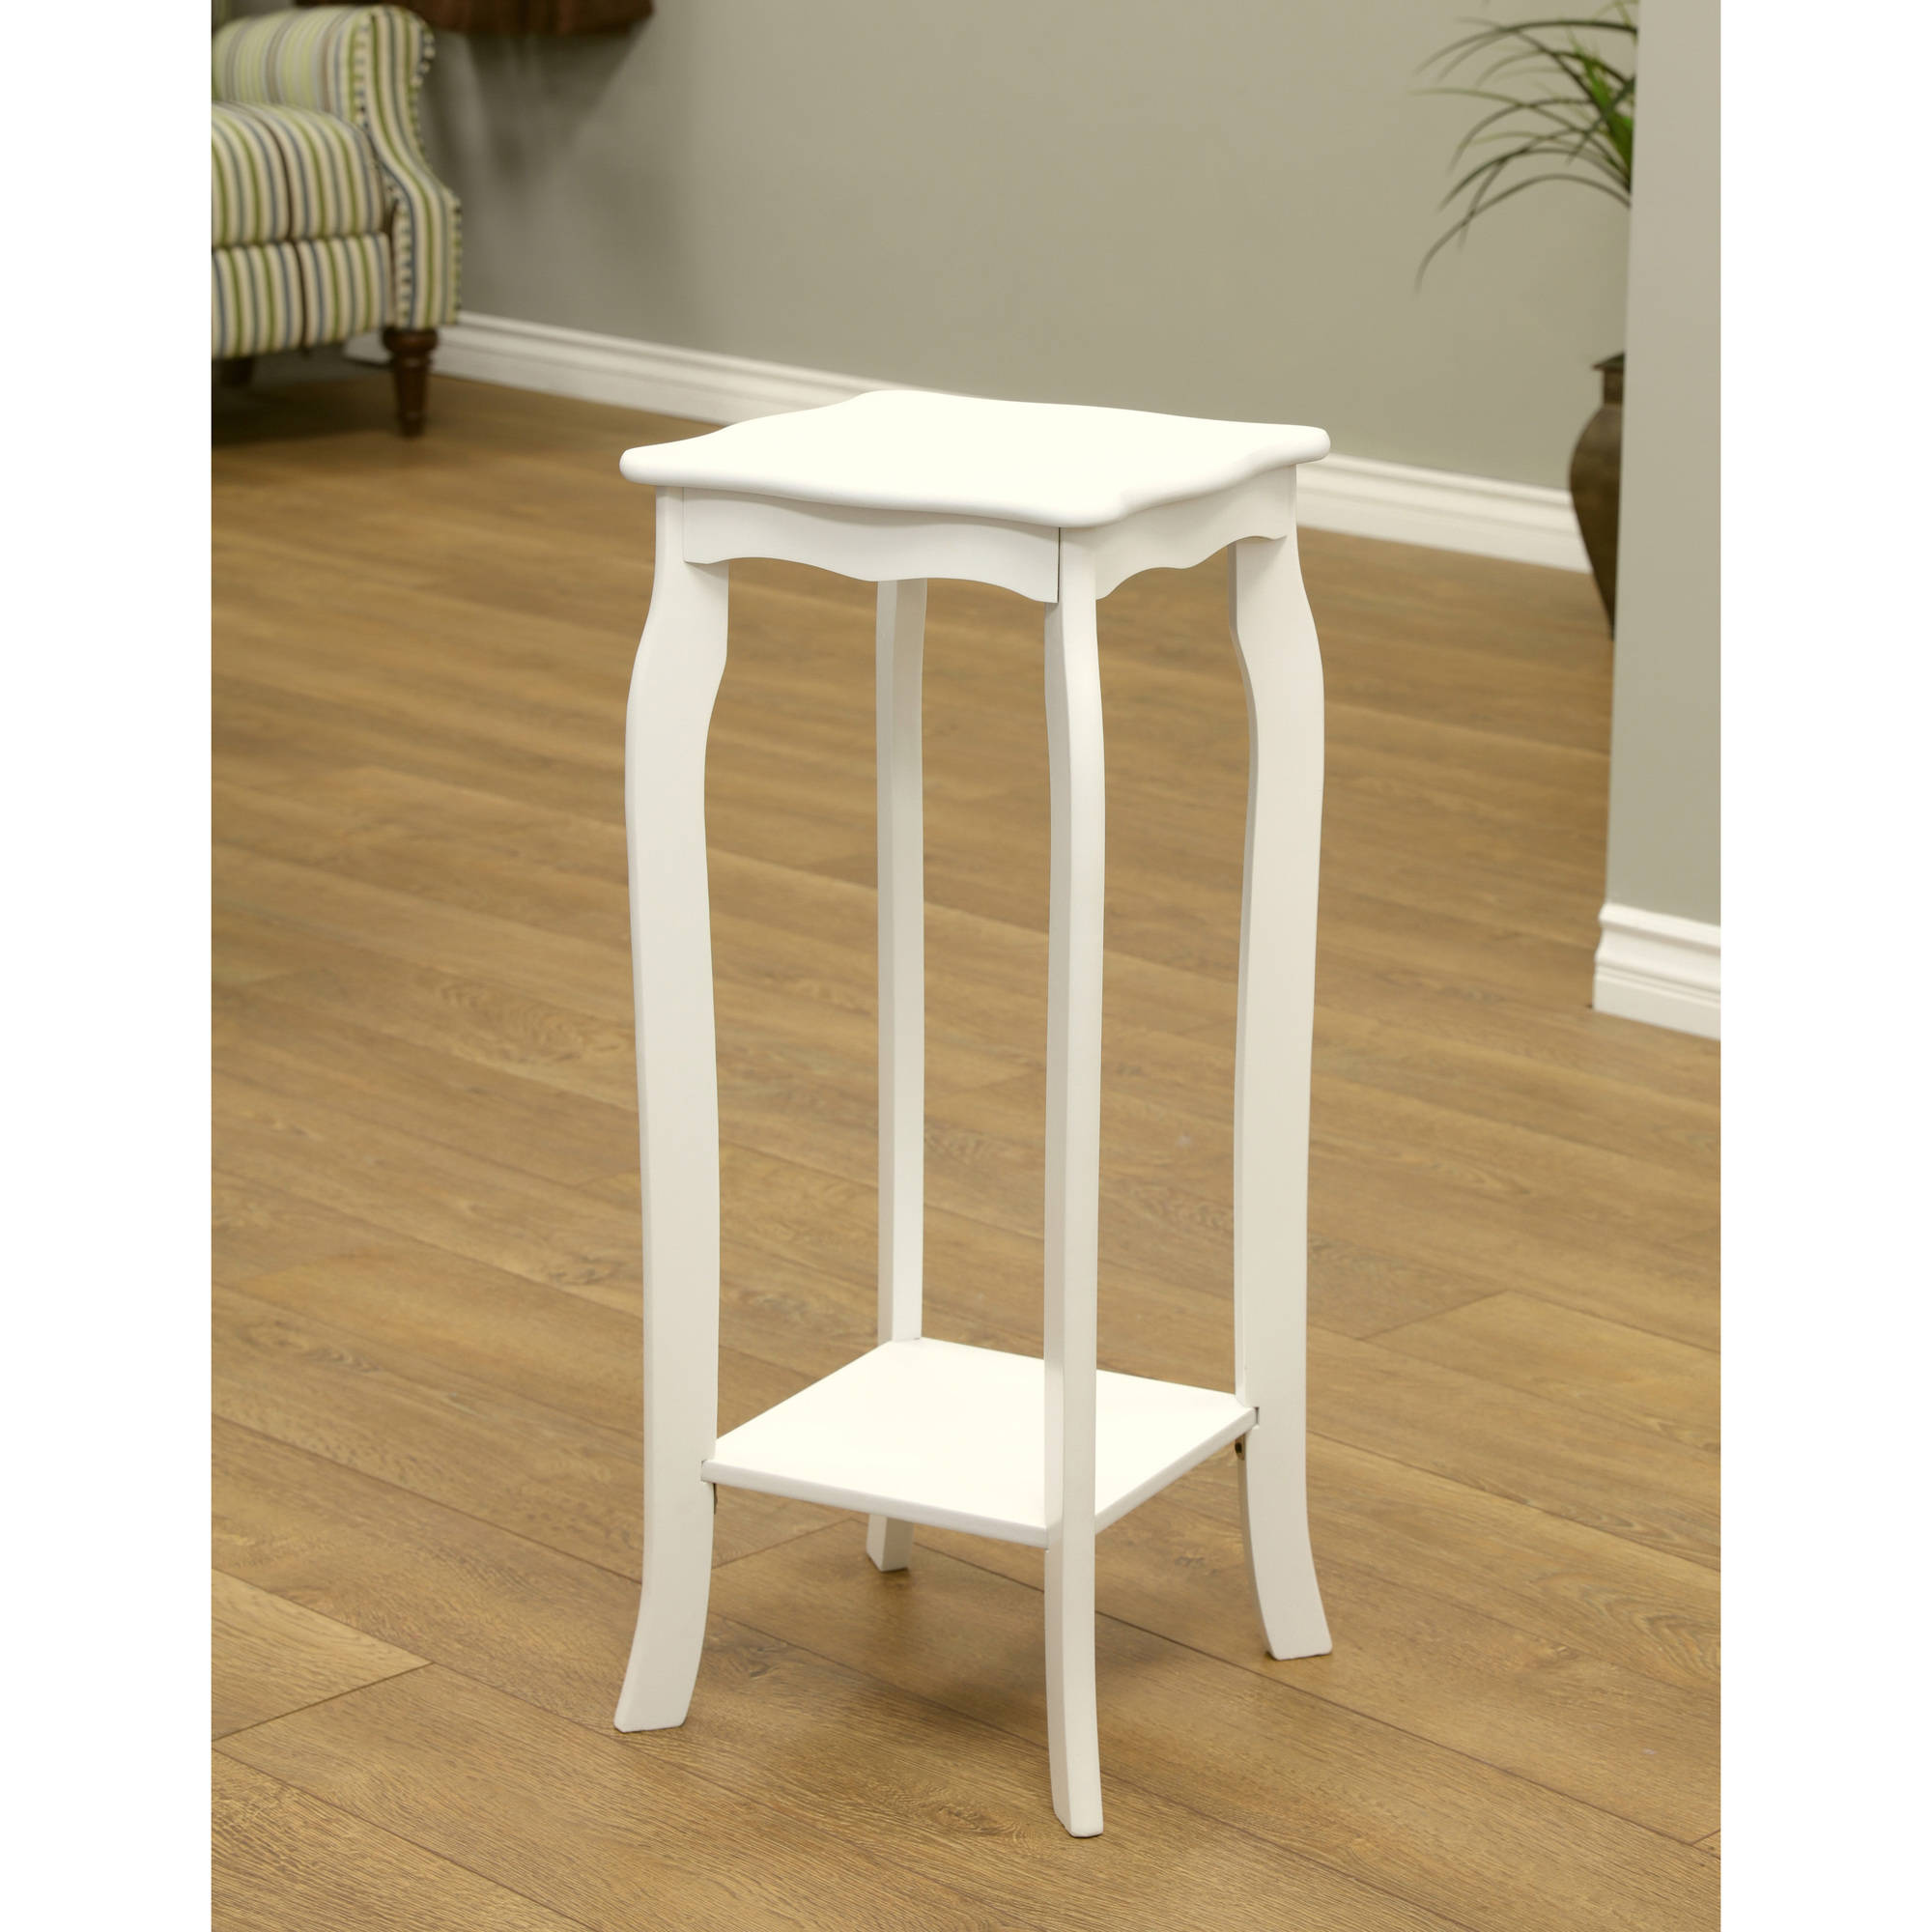 Home Craft Plant Stand, White